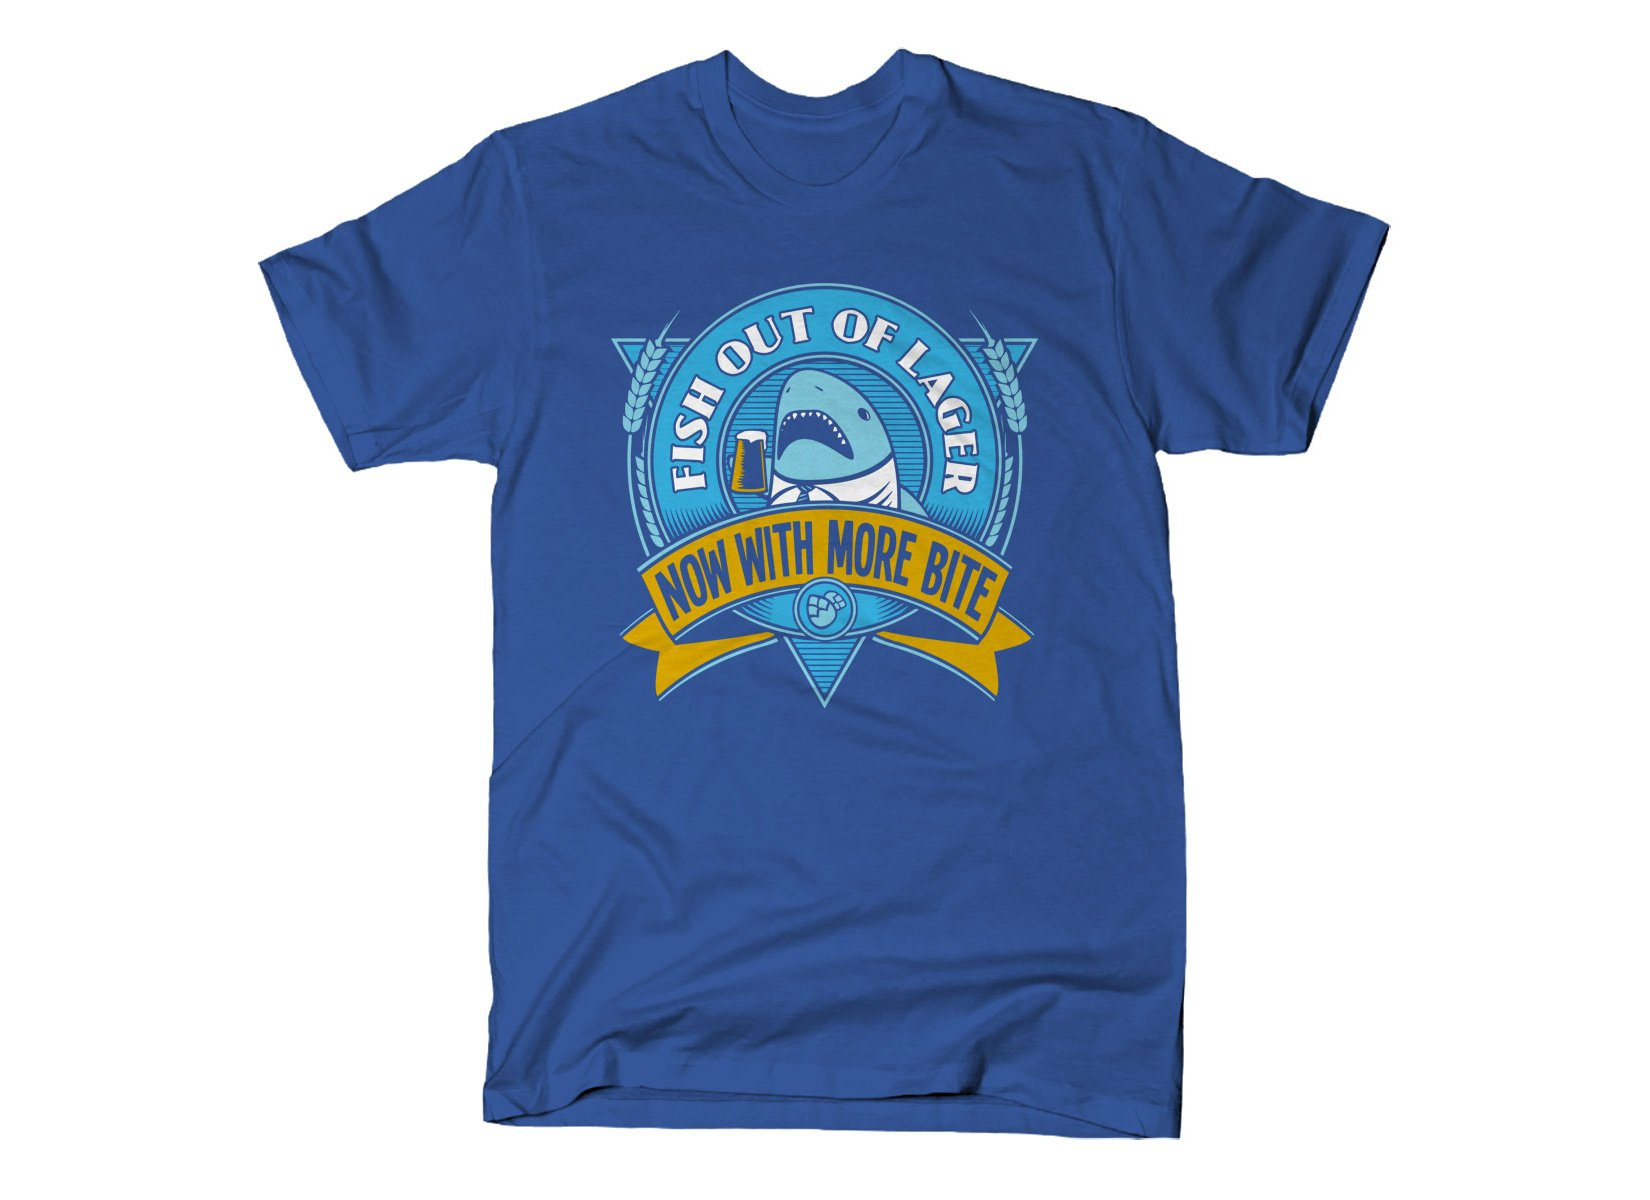 Fish Out Of Lager on Mens T-Shirt